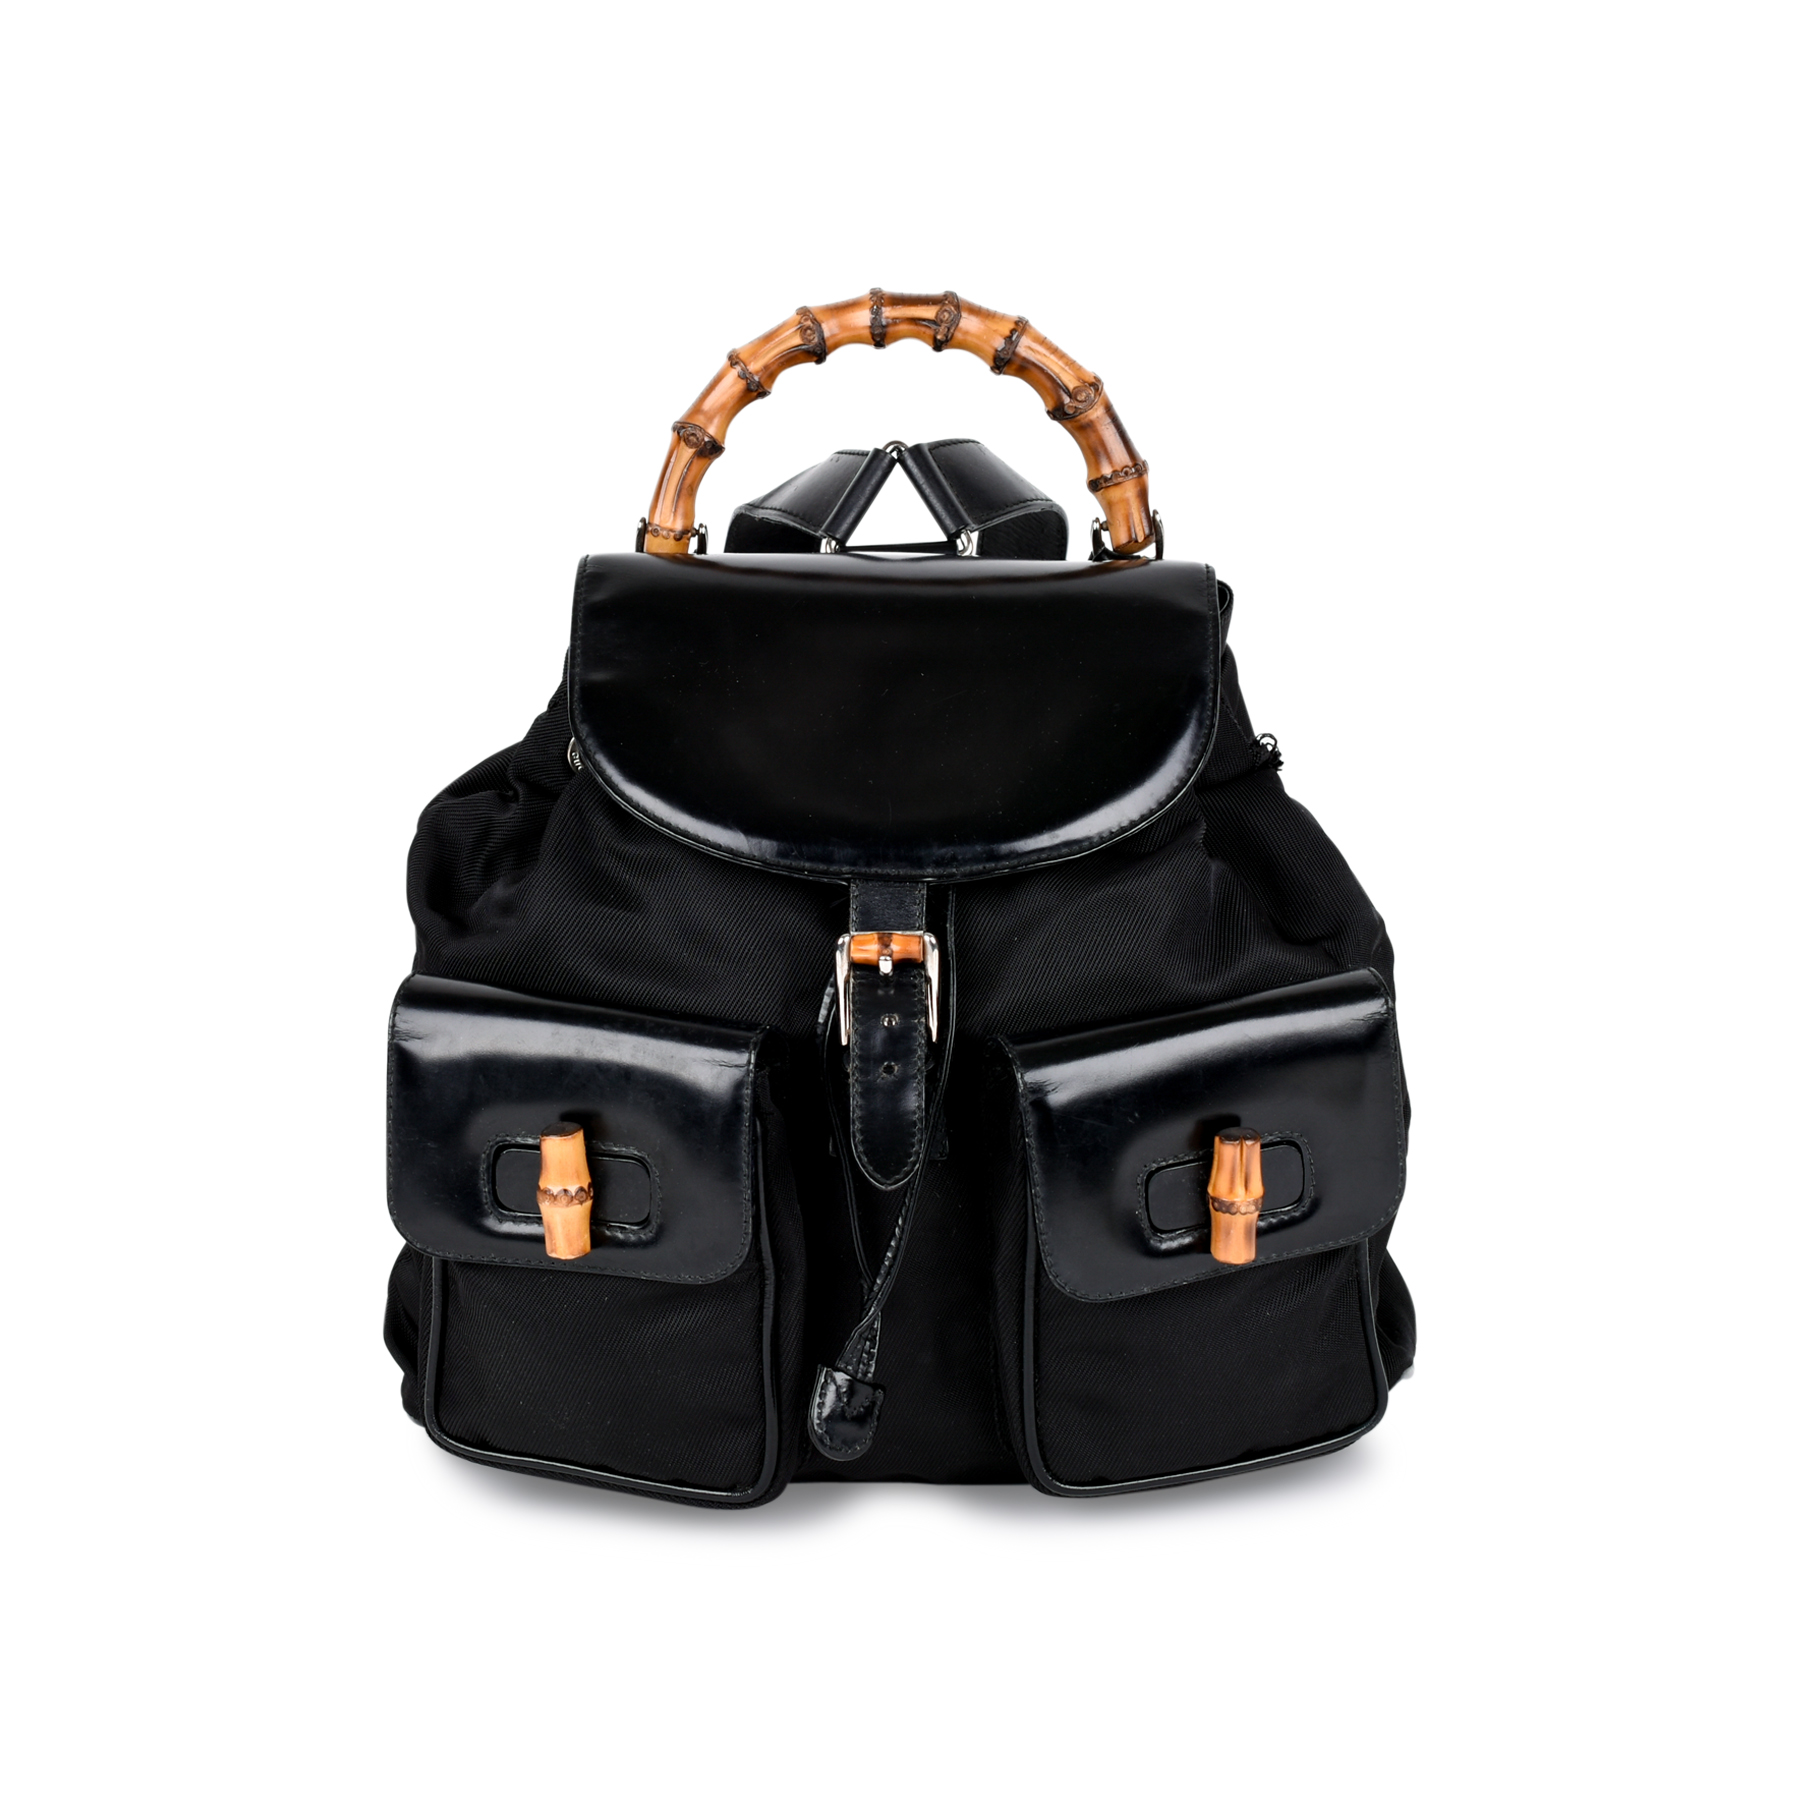 47615bce66a0 Authentic Vintage Gucci Bamboo Backpack (PSS-214-00023) | THE FIFTH  COLLECTION